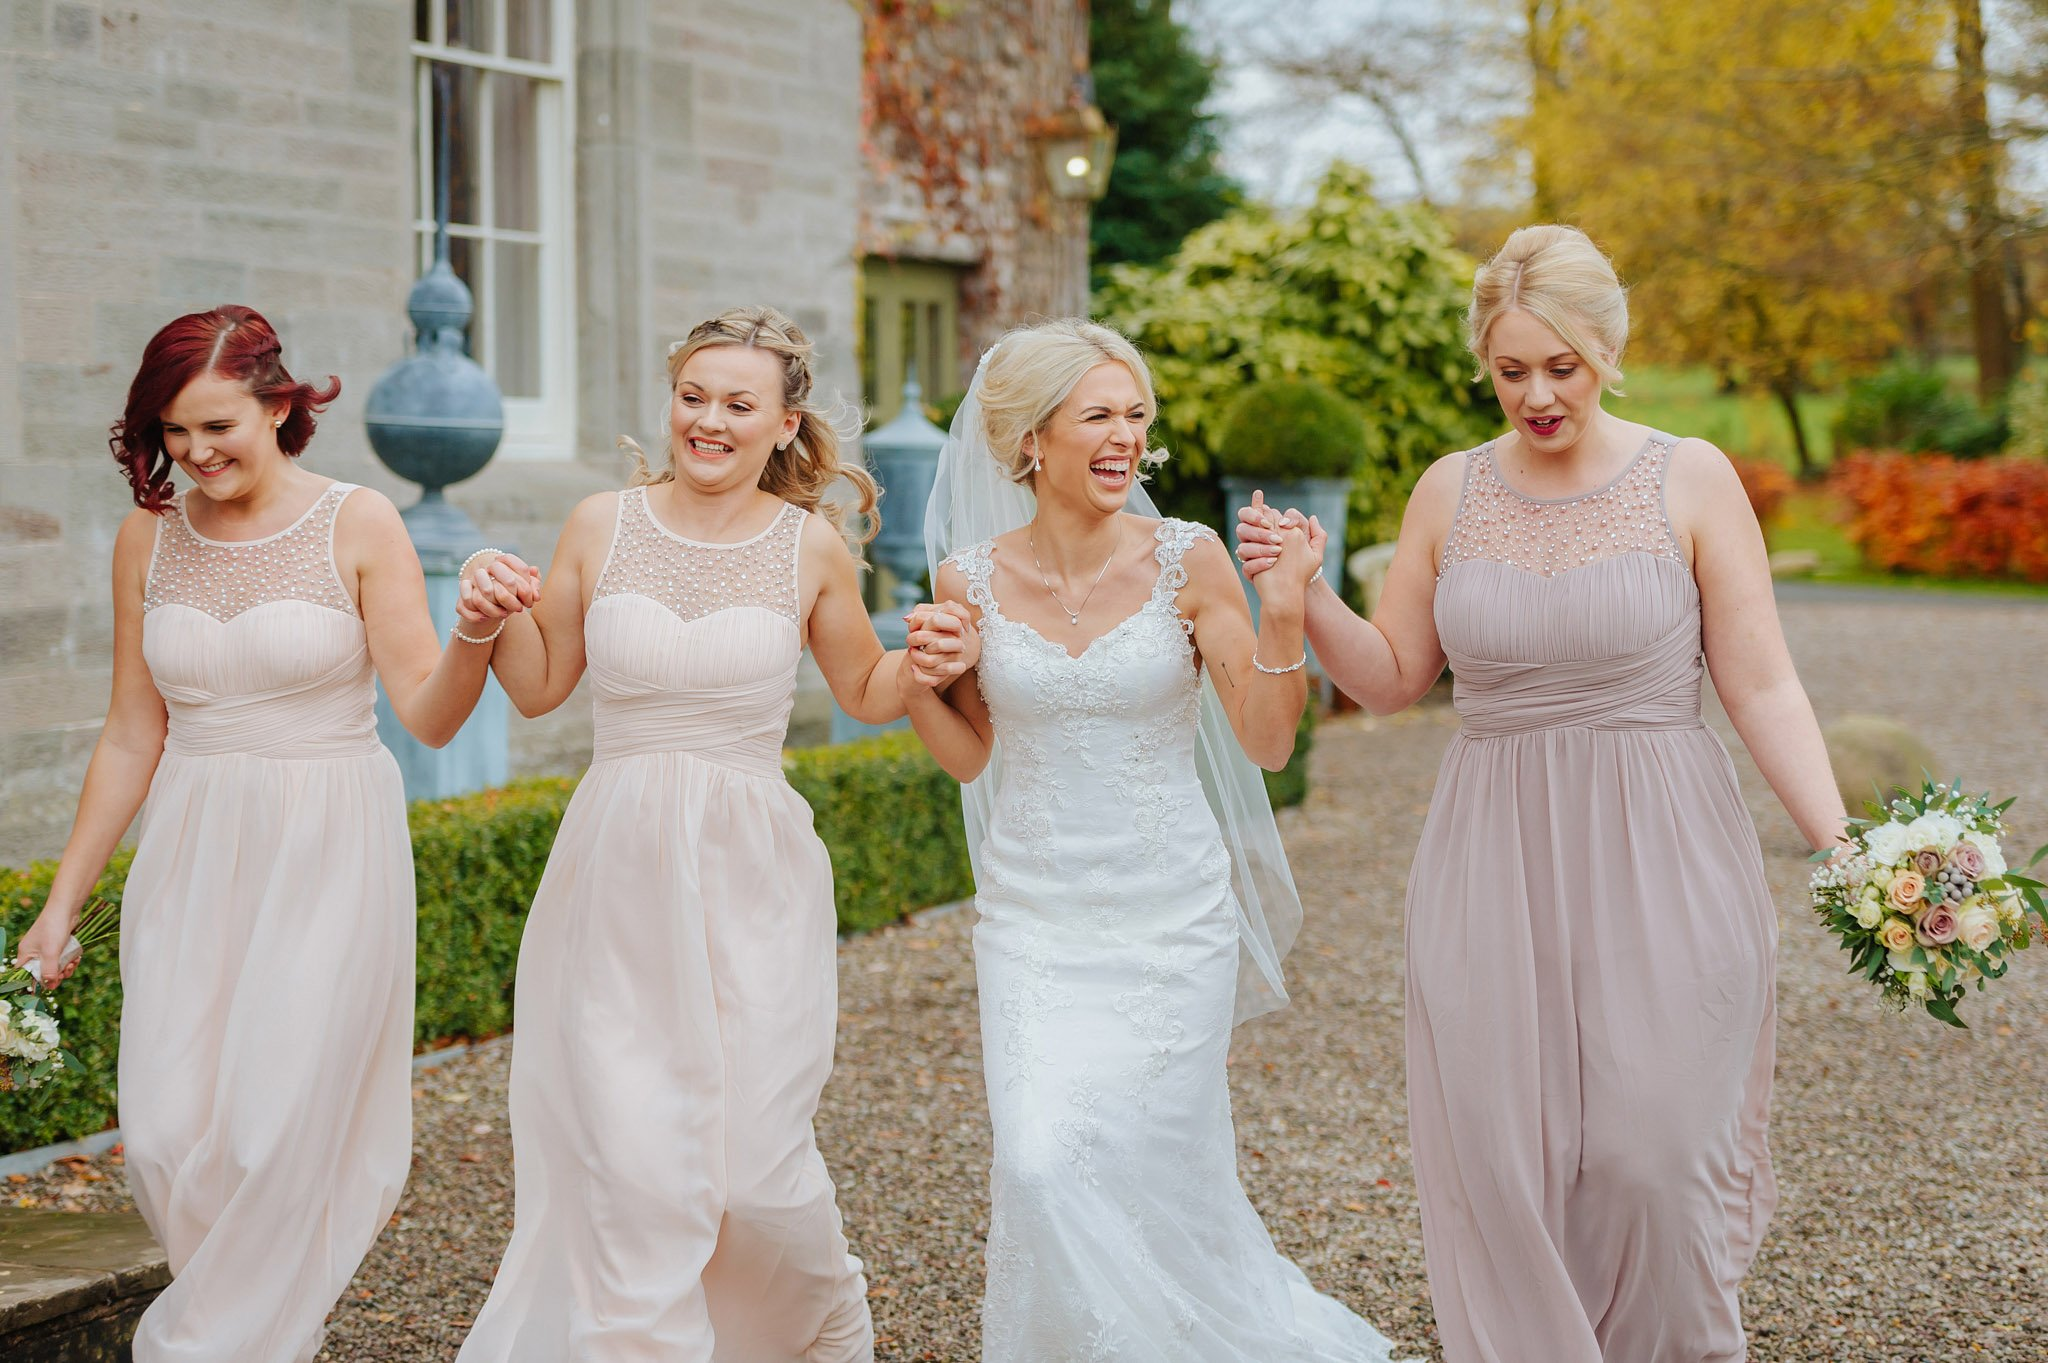 lemore manor wedding herefordshire 71 - Lemore Manor wedding, Herefordshire - West Midlands | Sadie + Ken